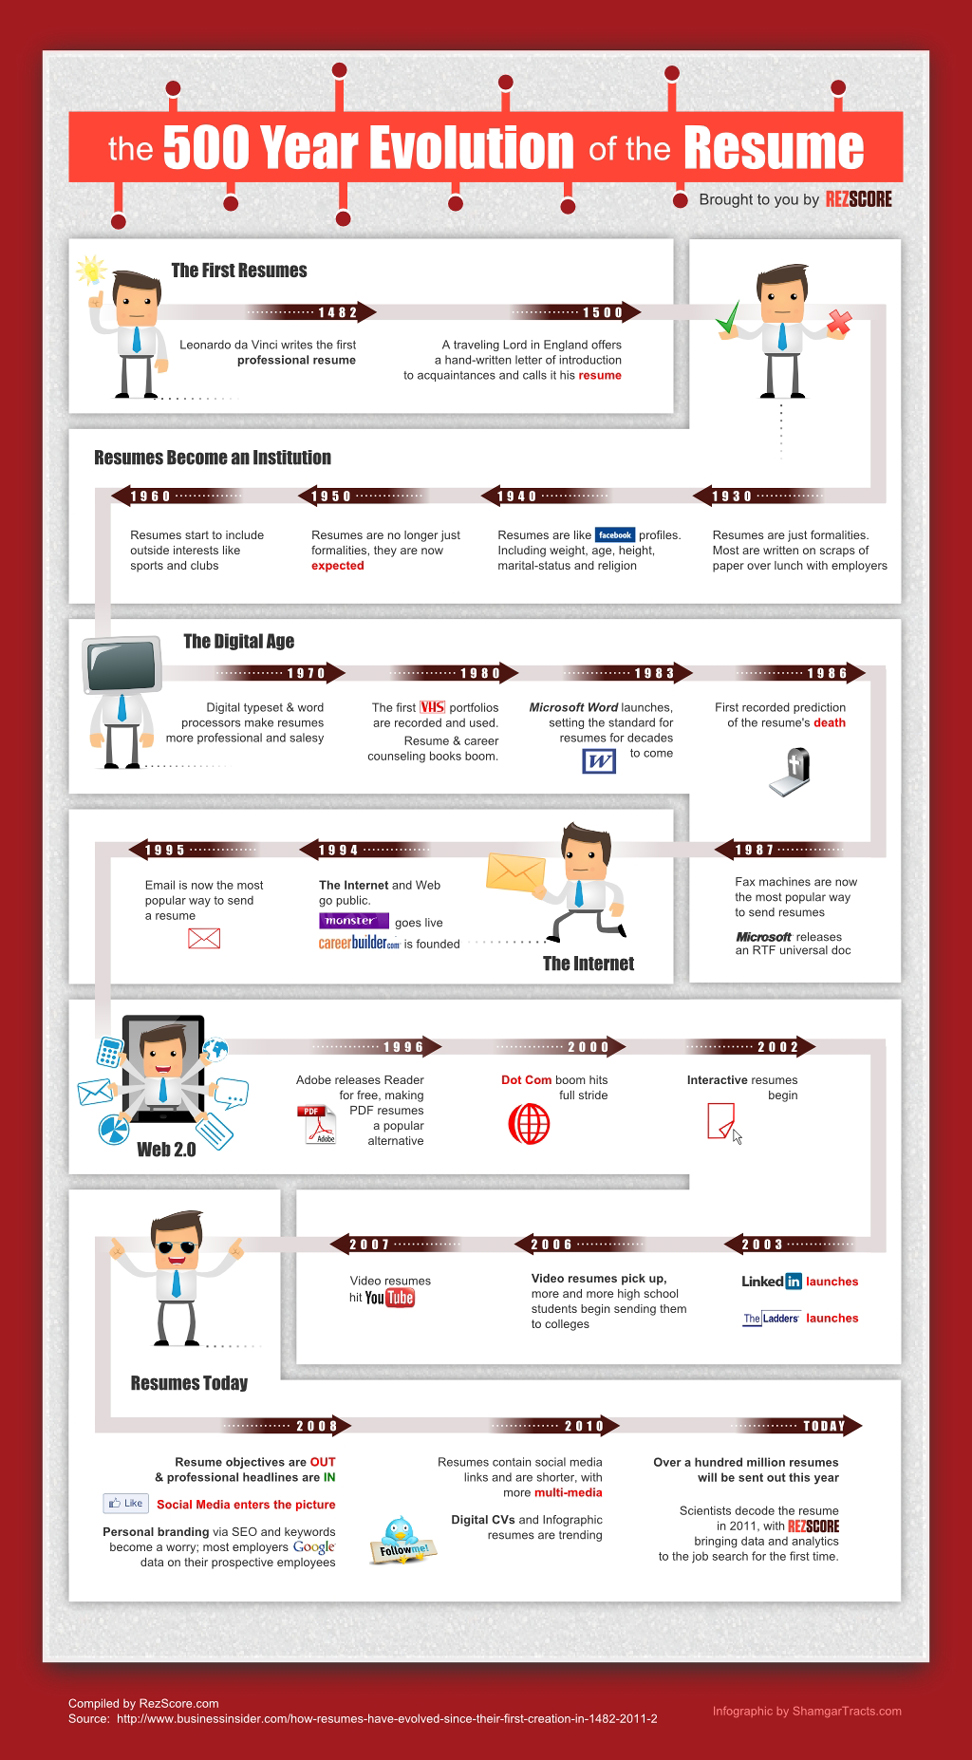 The-500-Year-Evolution-of-the-Resume